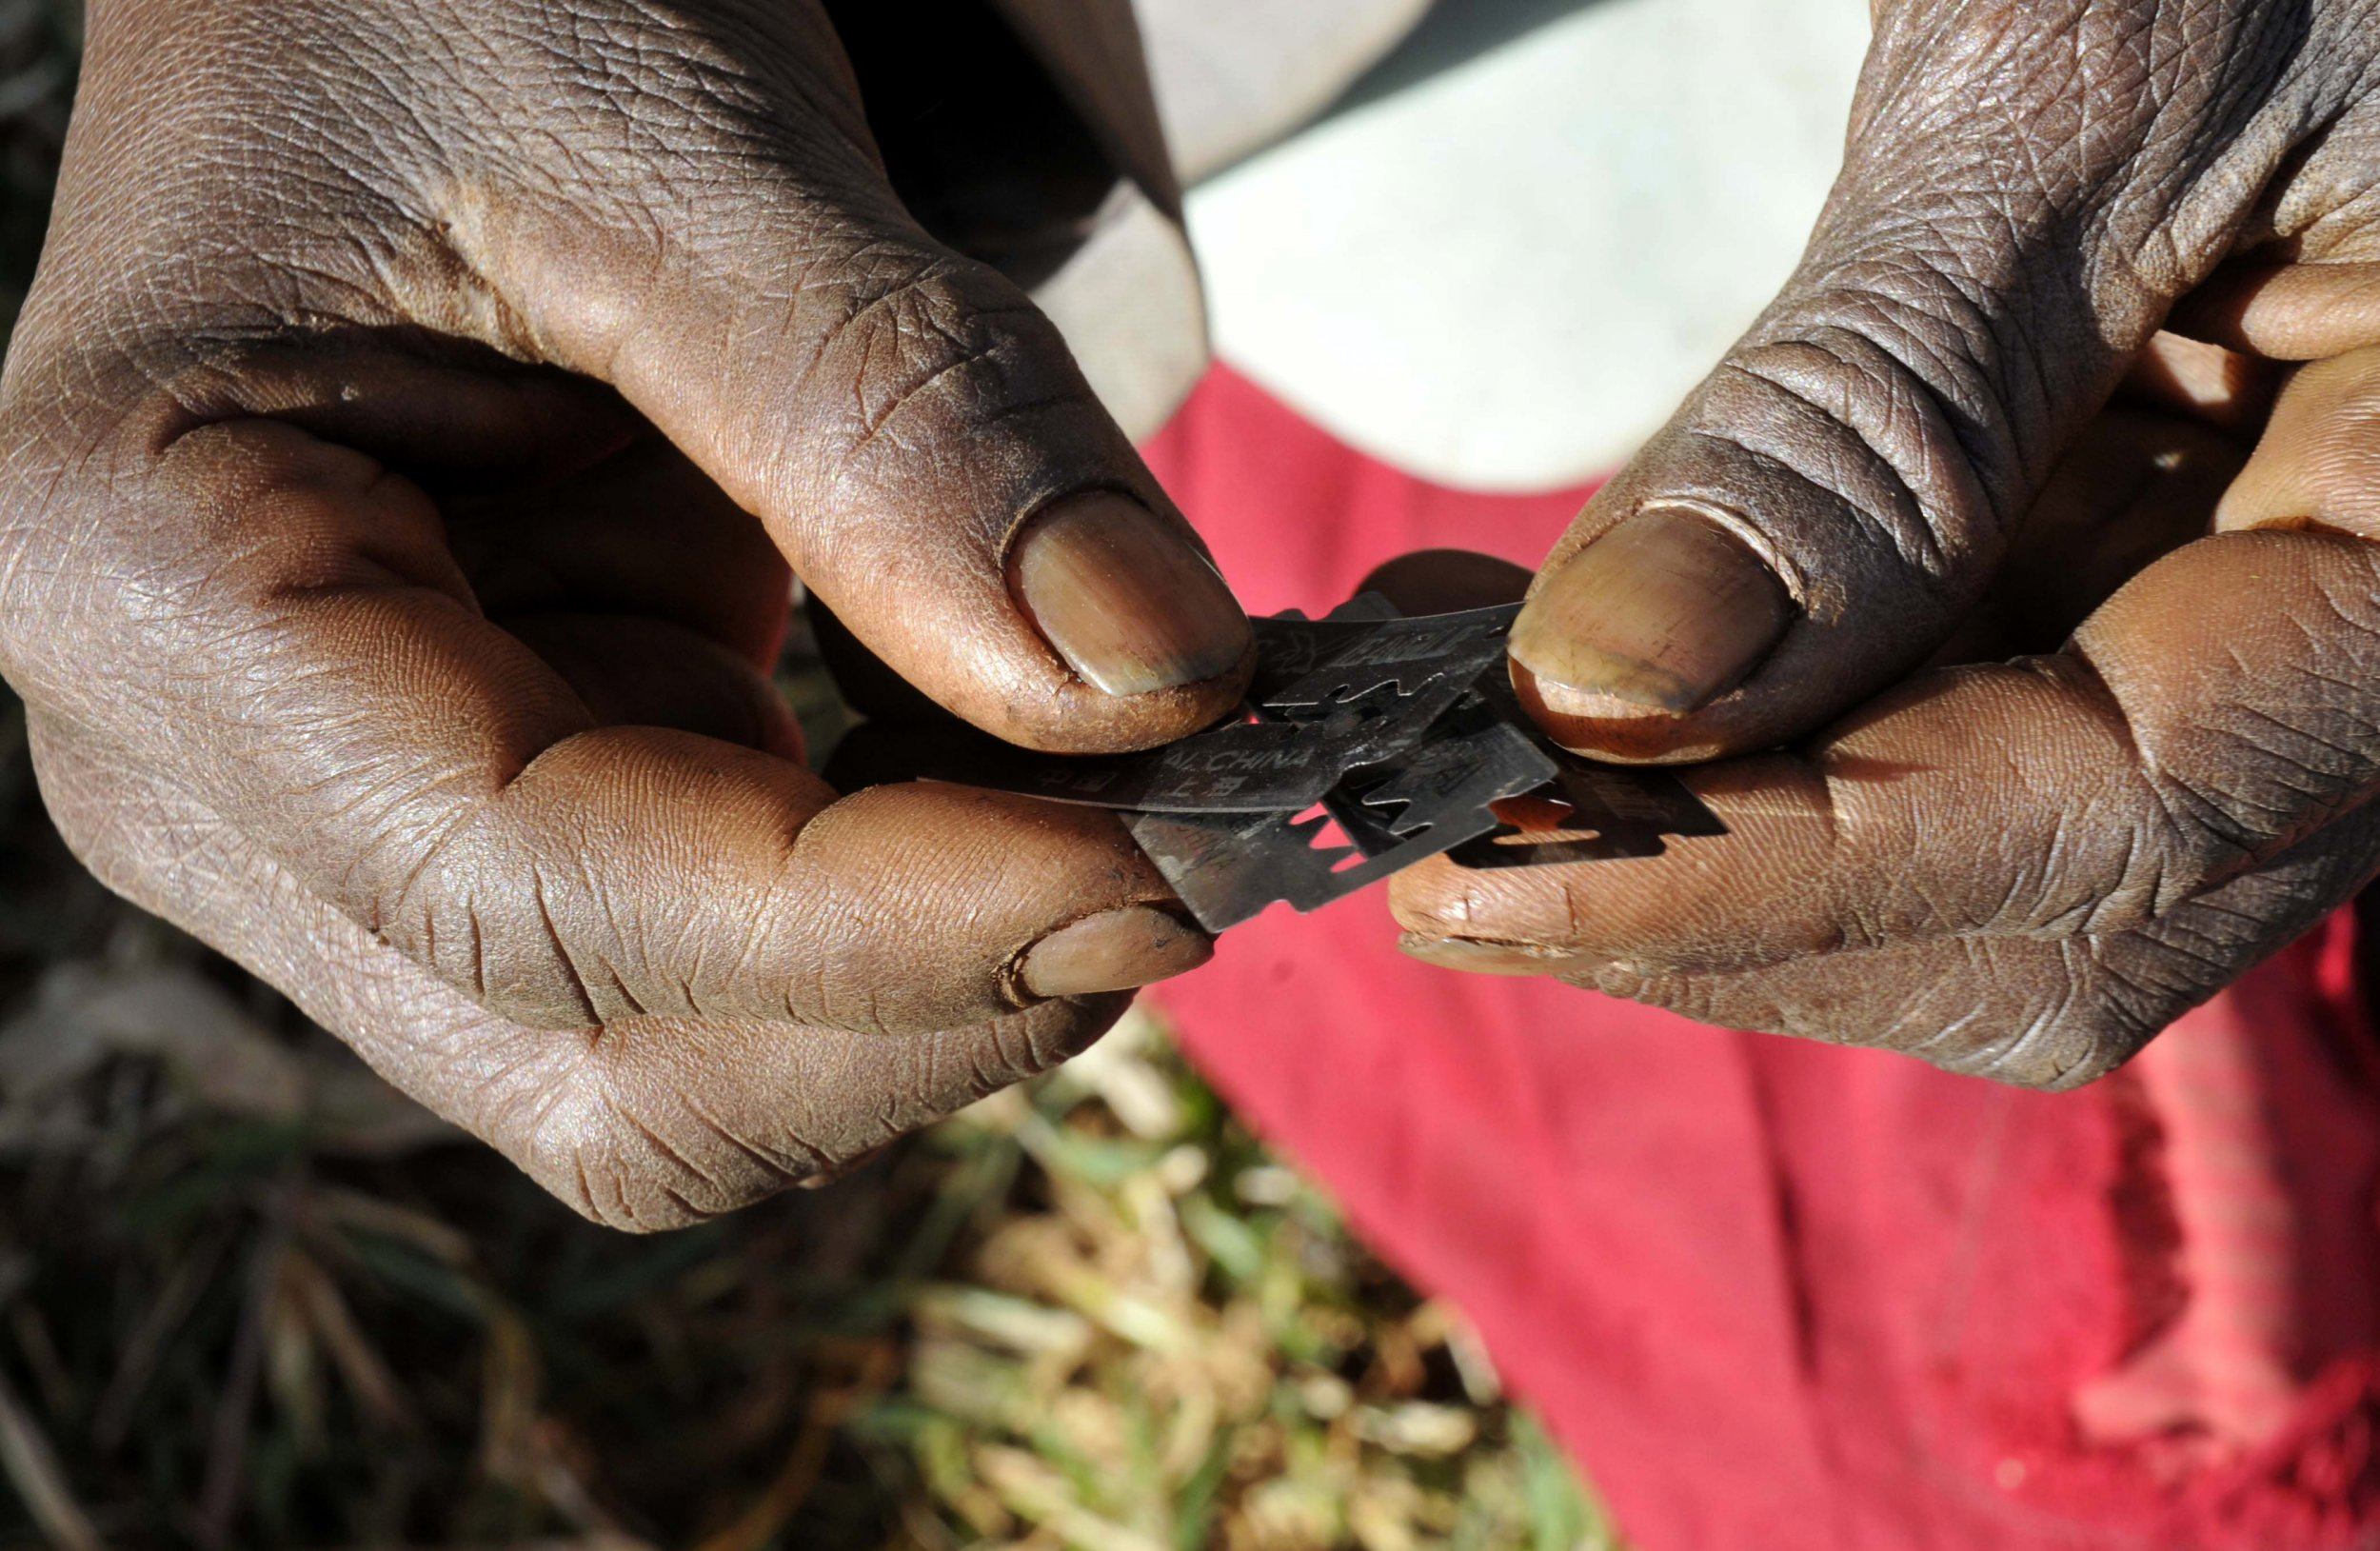 an analysis of the origins of female genital mutilation Female genital mutilation (fgm) is a collective term for various surgeries performed on young girls while growing up, often performed as part of initiation ritu.